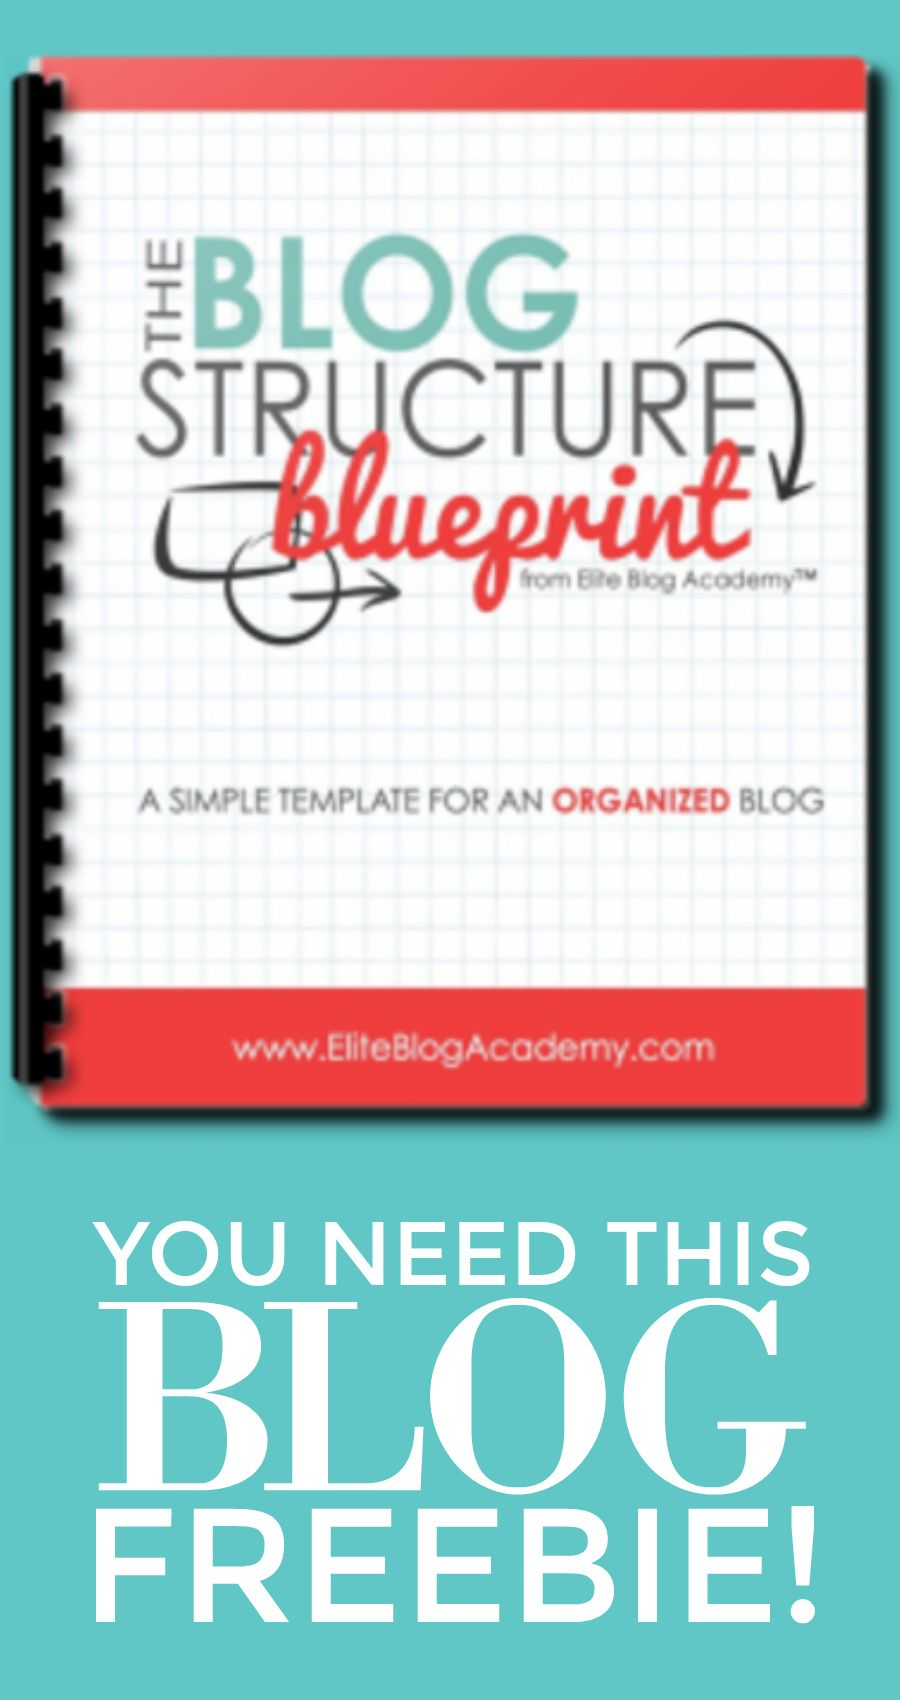 With the eba blog structure blueprint you can start organizing your with the eba blog structure blueprint you can start organizing your blog right away malvernweather Image collections